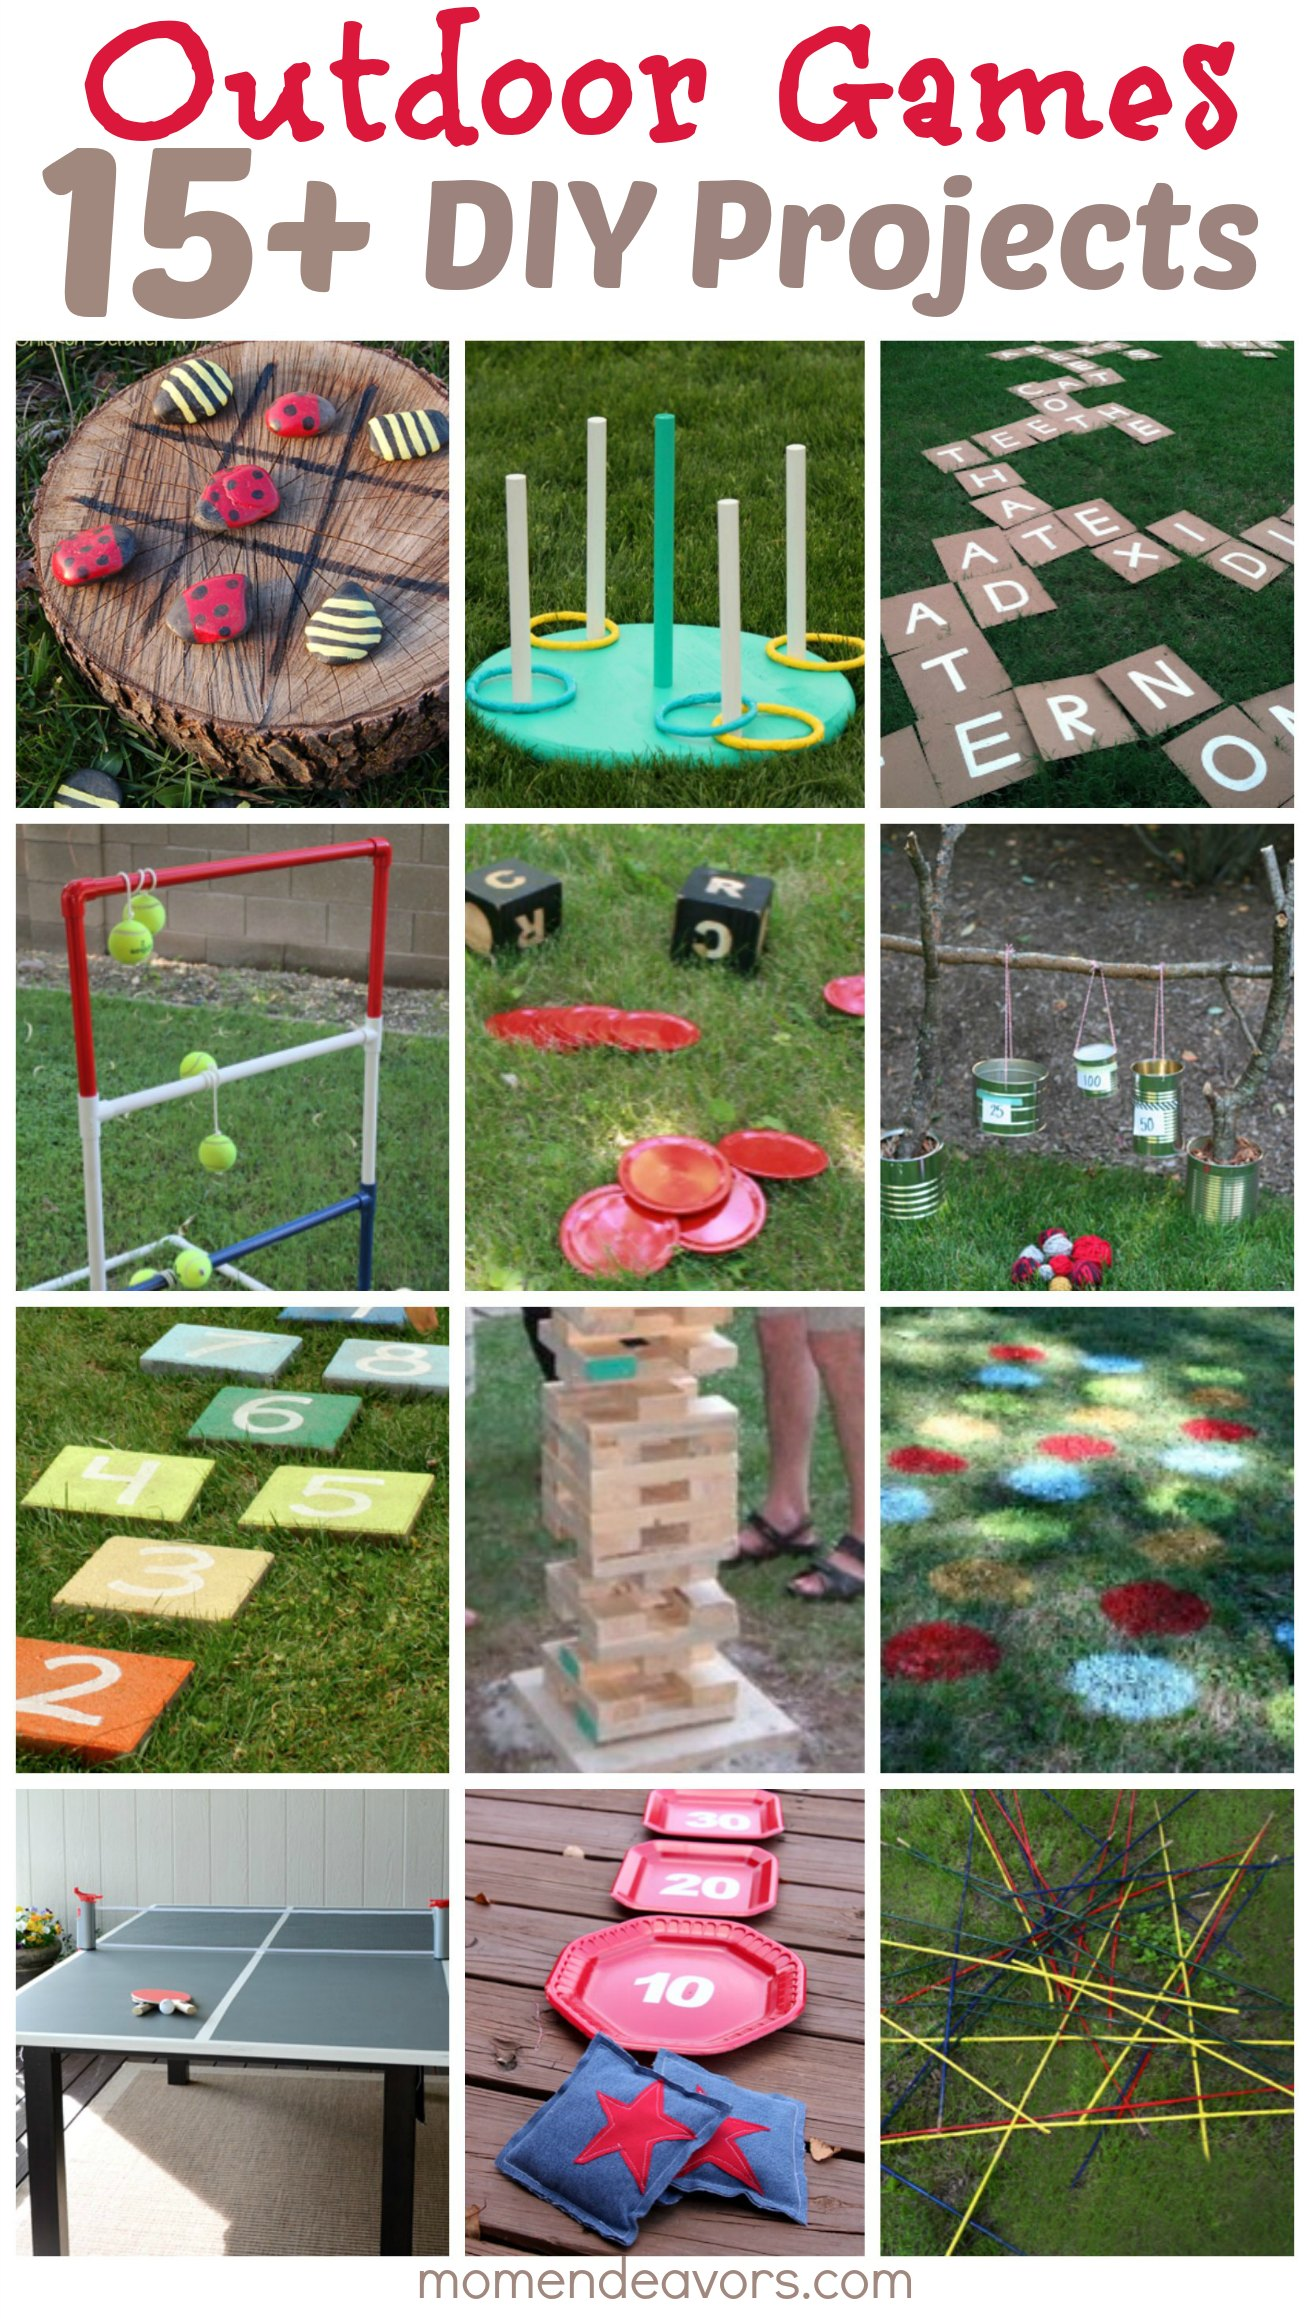 Diy Outdoor Games 15 Awesome Project Ideas For Backyard